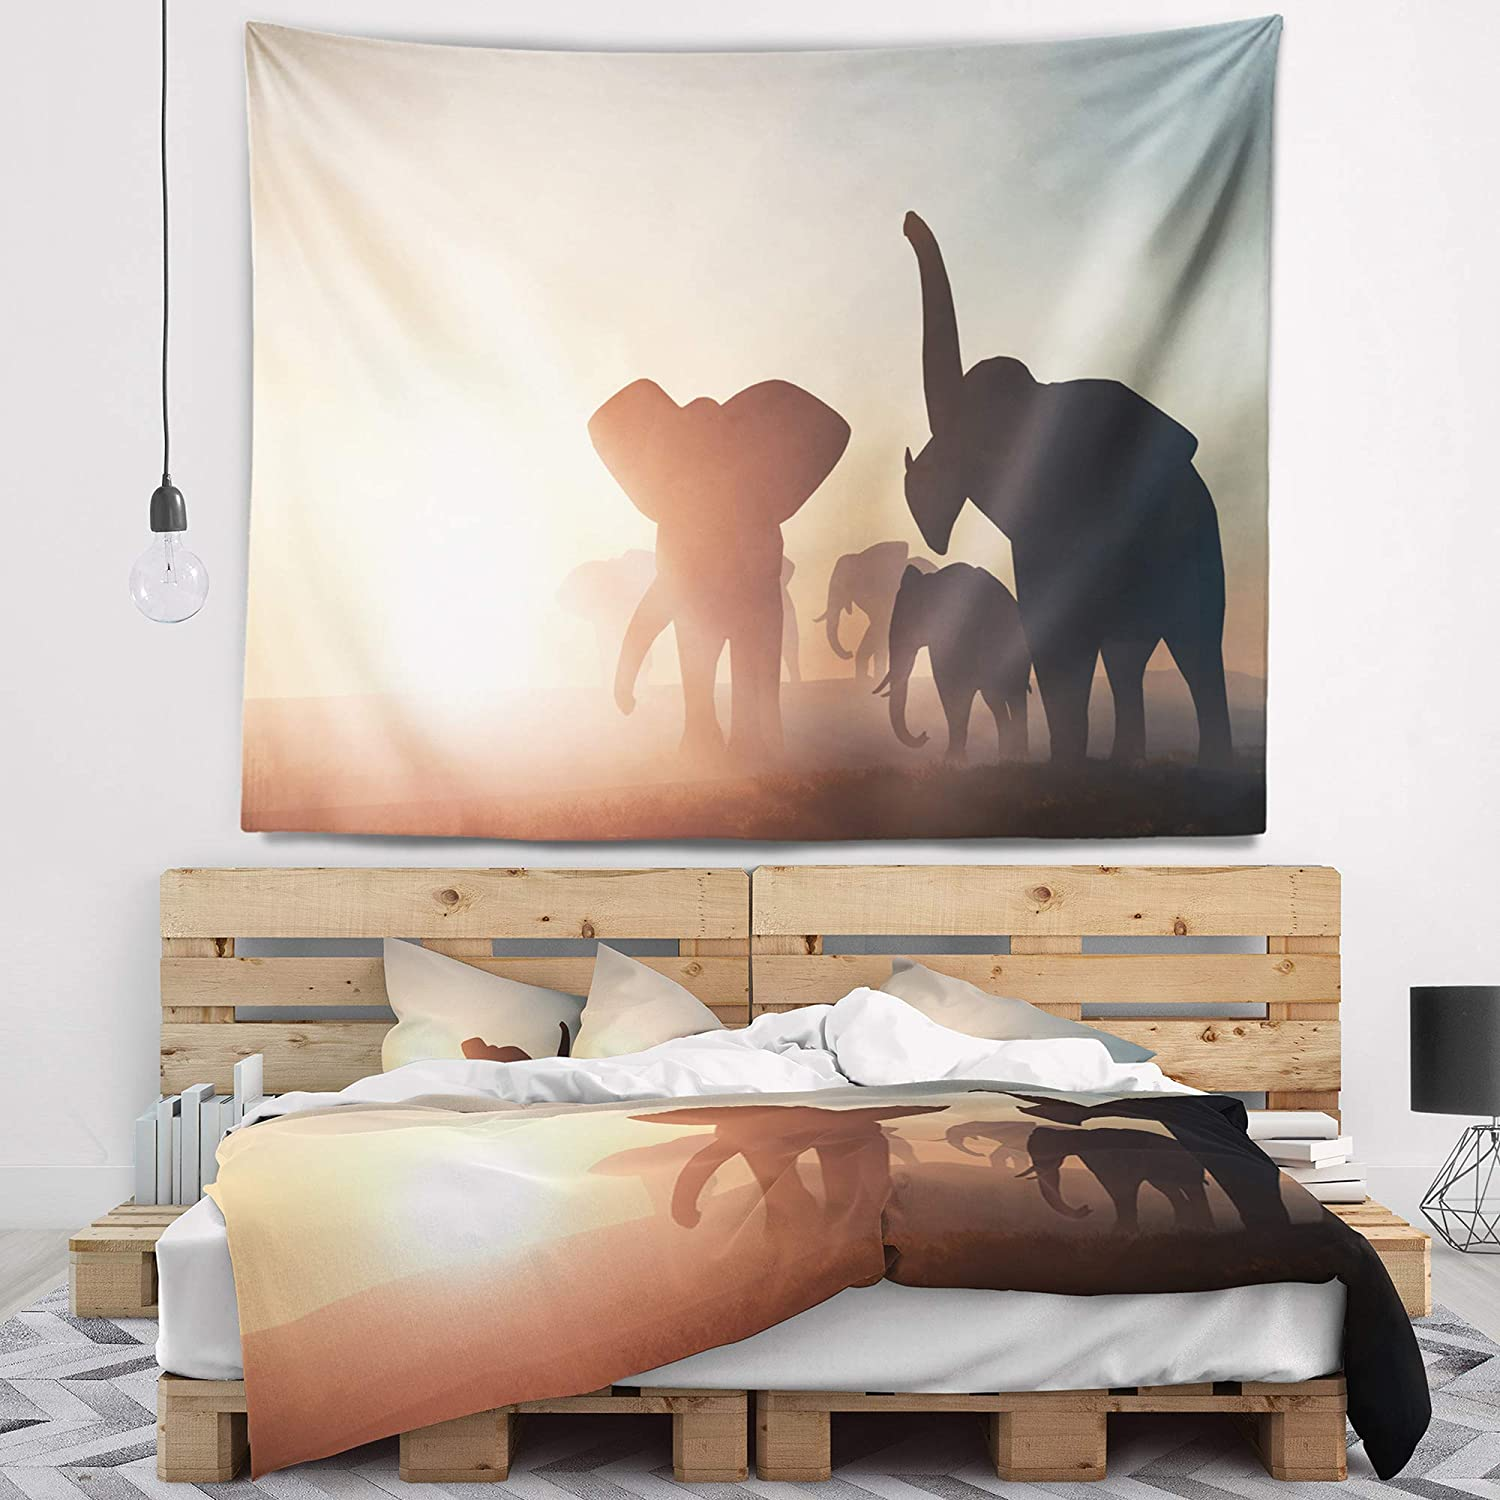 Designart TAP12947-39-32 'Group of Elephants in The Wild' African Blanket Décor Art for Home and Office Wall Tapestry, Medium: 39' x 32', Created on Lightweight Polyester Fabric